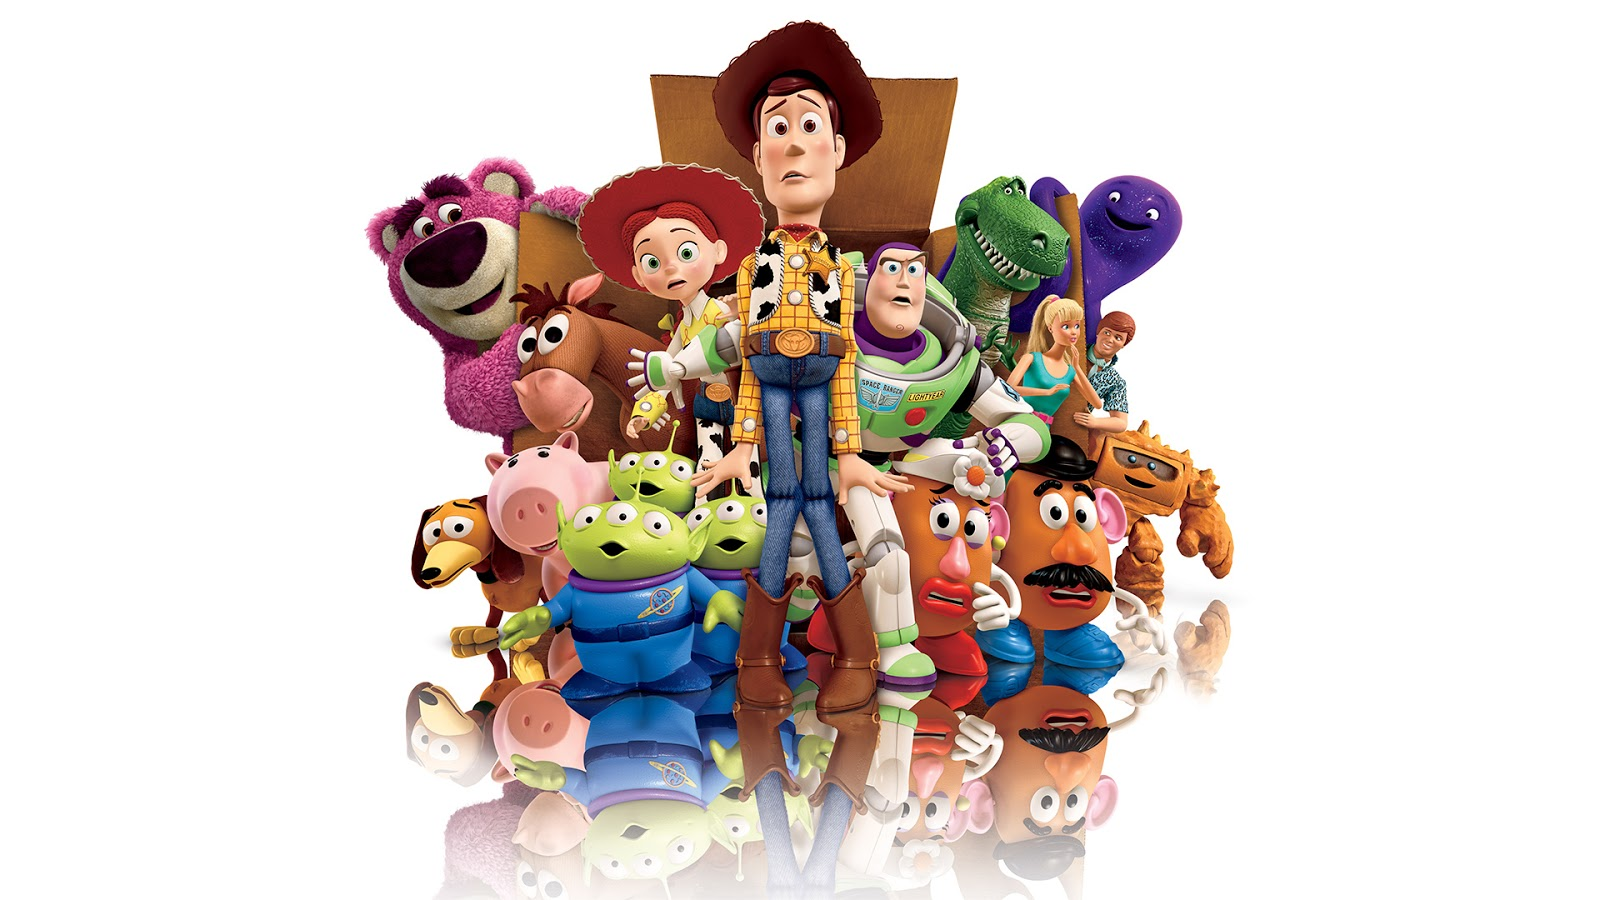 disney hd wallpapers: toy story hd wallpapers